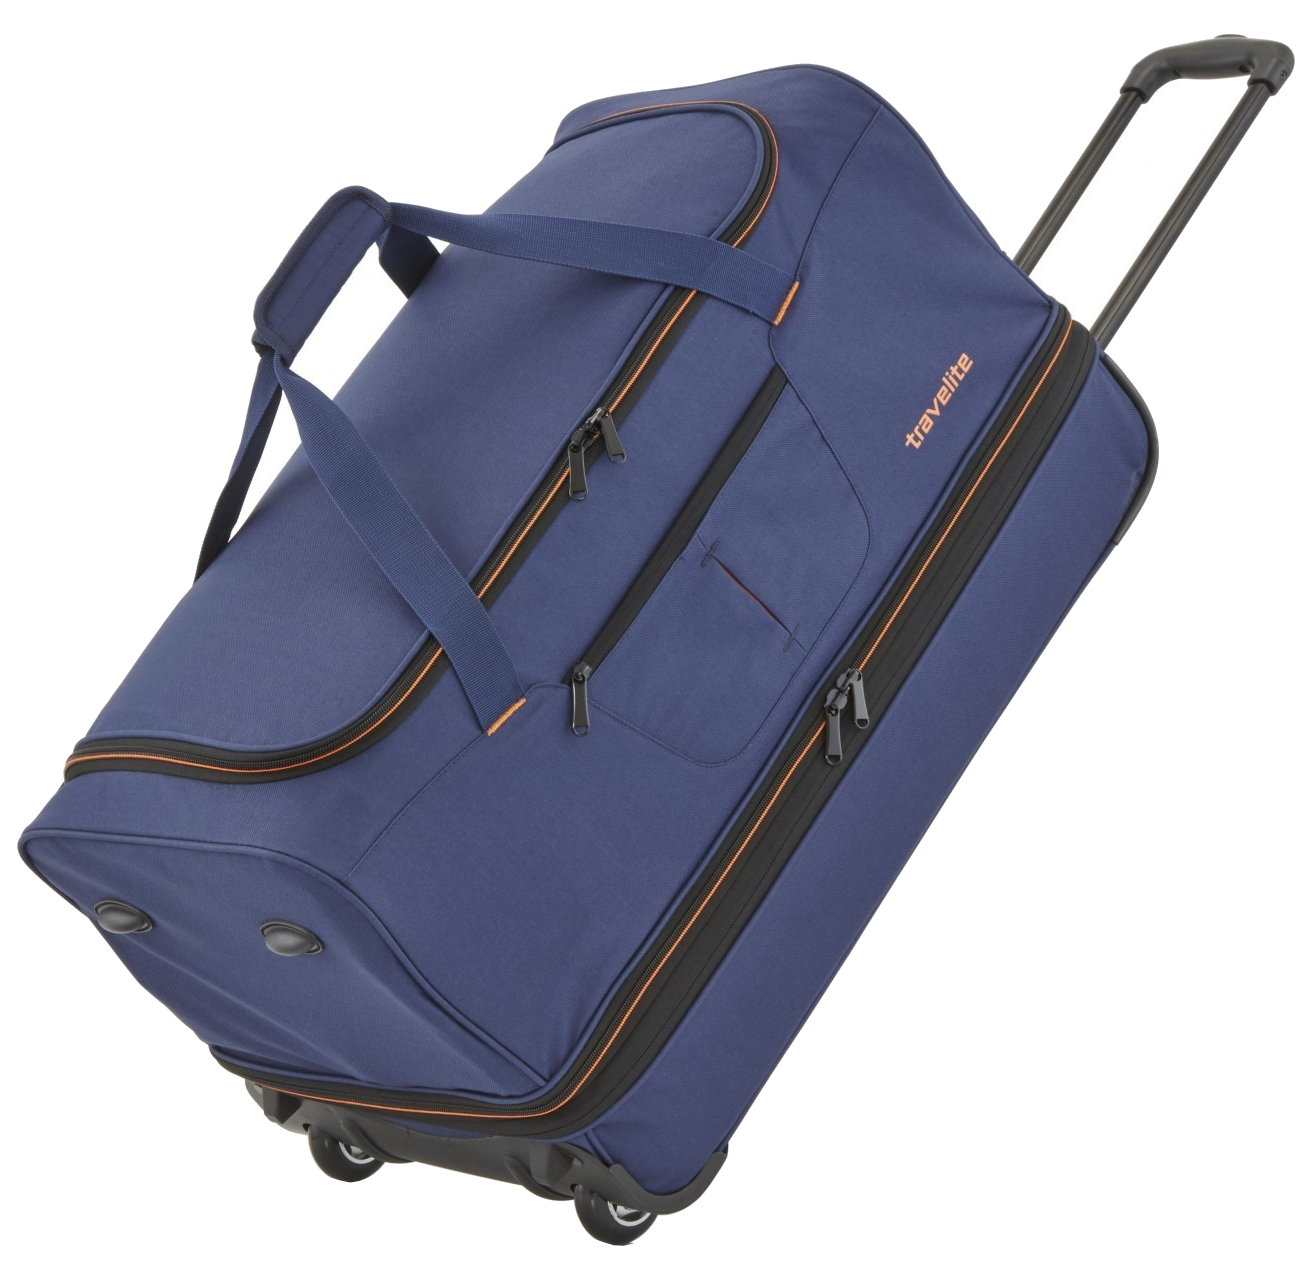 Travelite 'Basics' Trolley RT 55cm 2,3kg 51/64l marine/orange